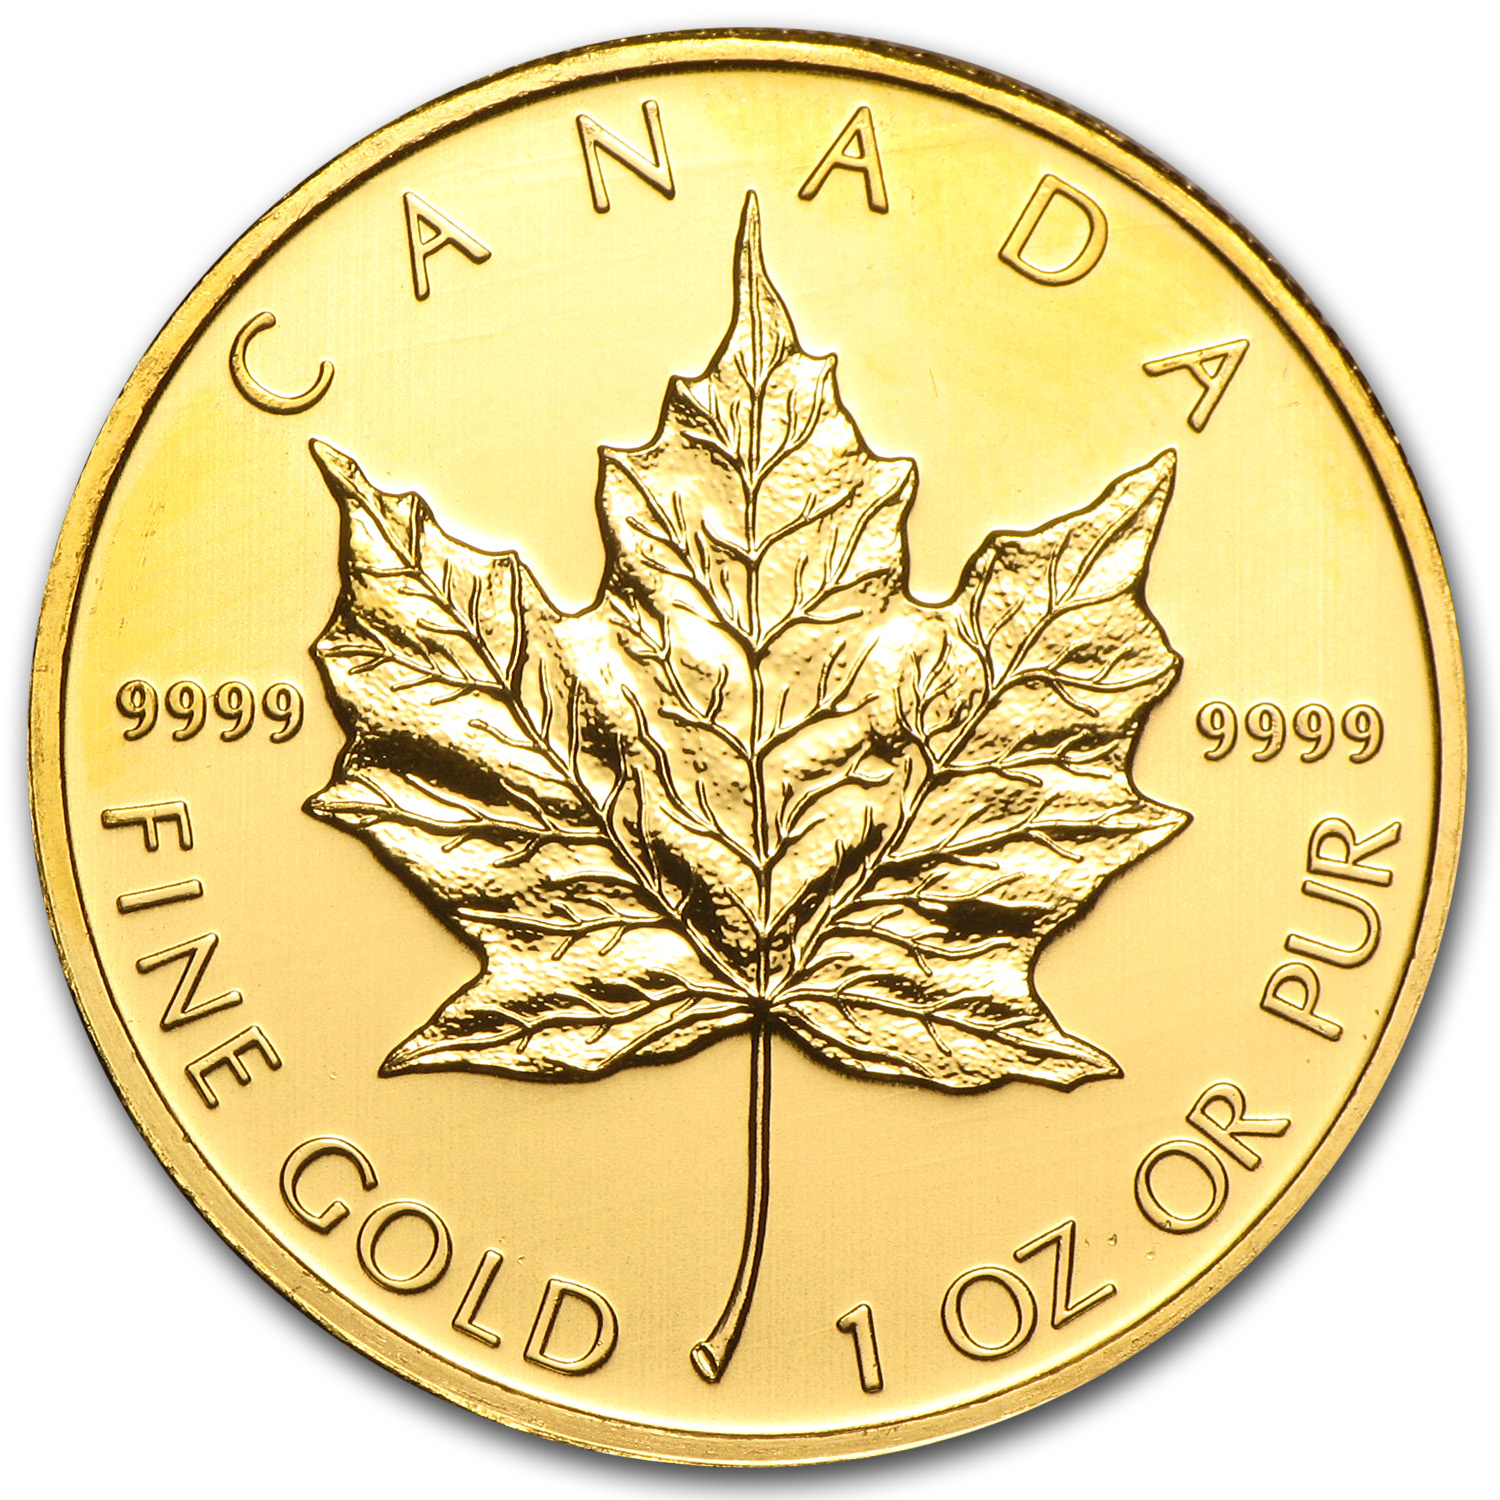 2010 Canada 1 oz Gold Maple Leaf BU